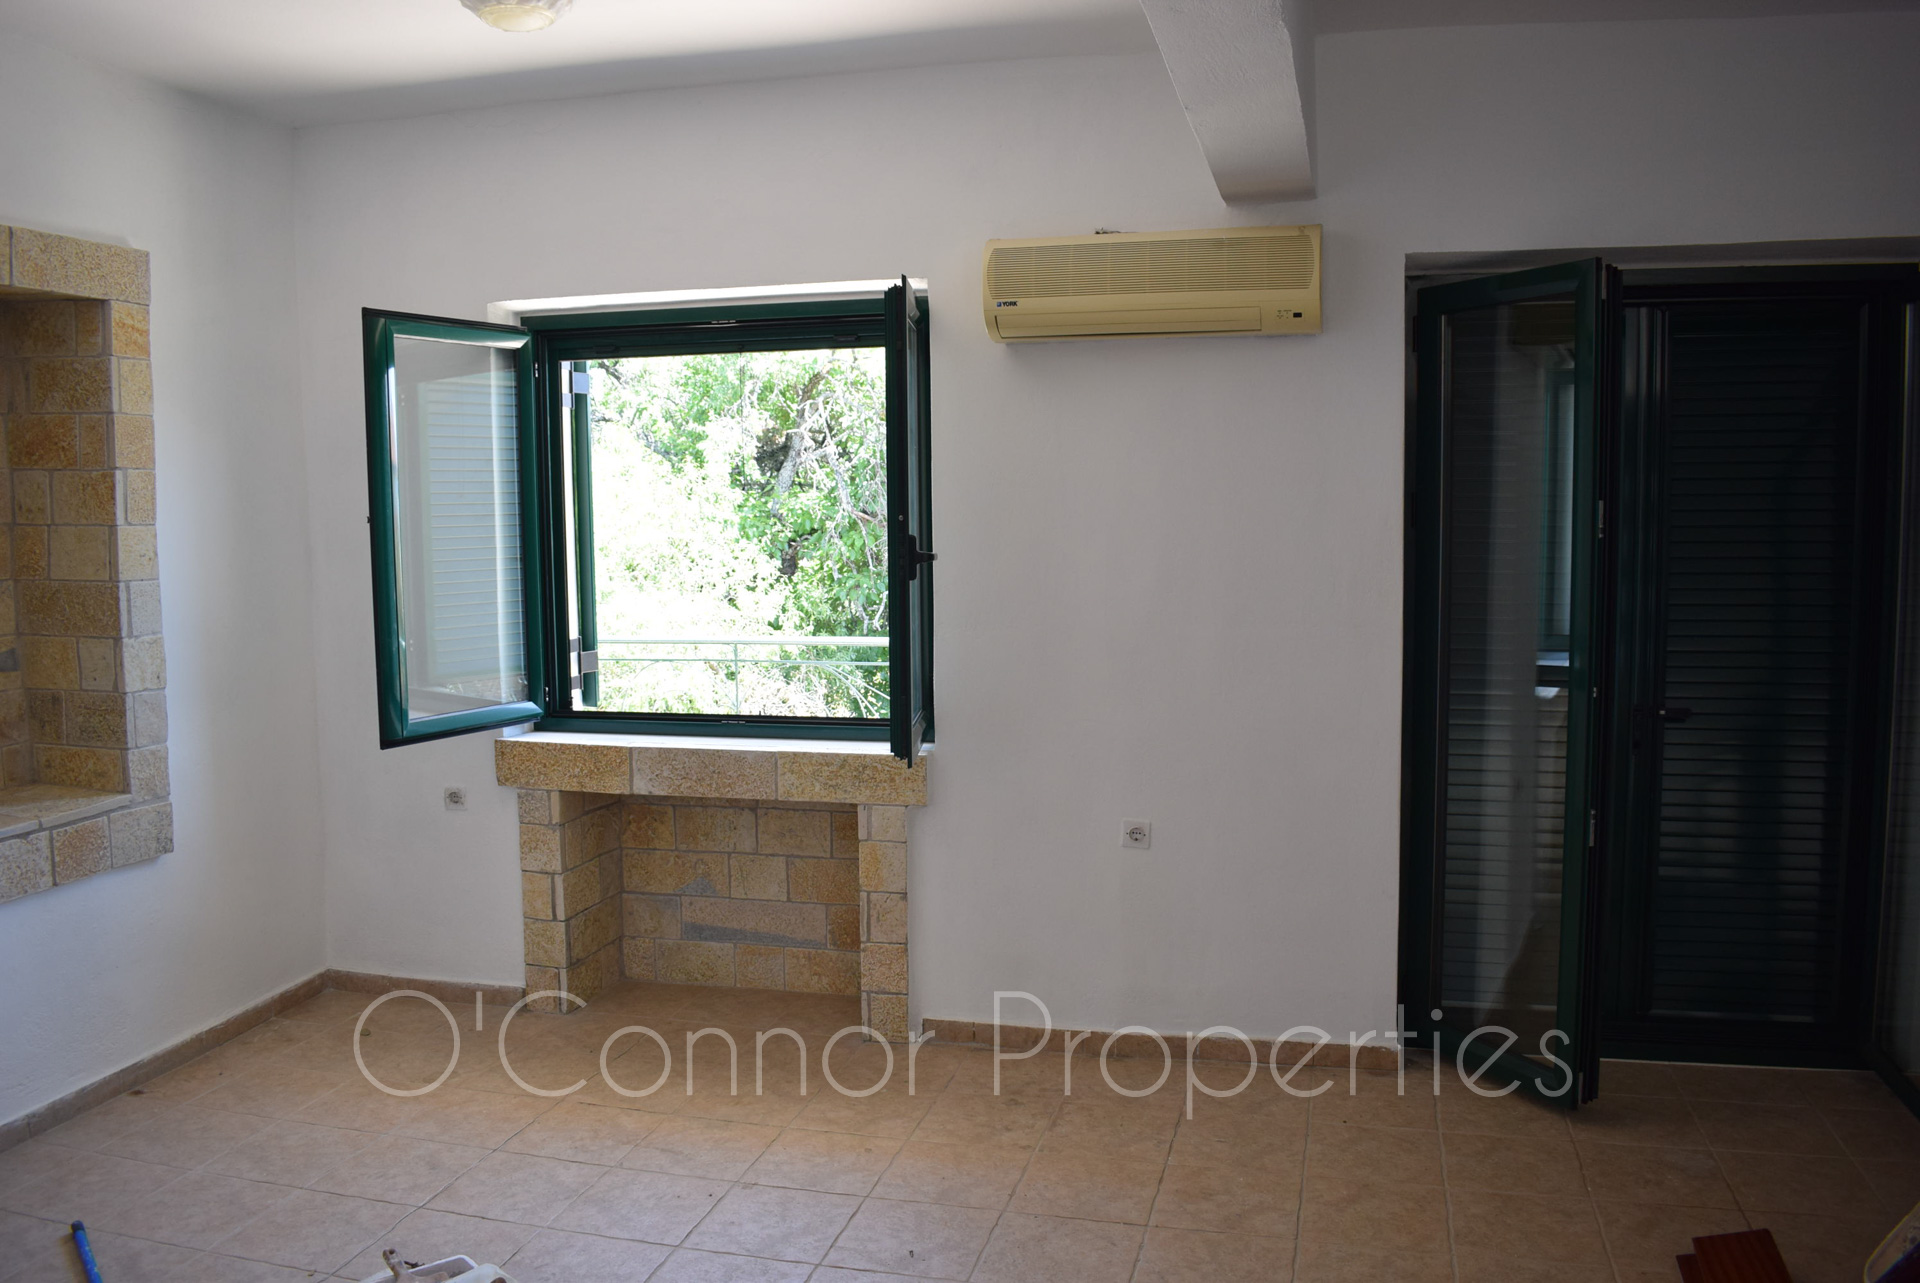 On offer, 3-bed detached house located in picturesque seaside town. -856-8